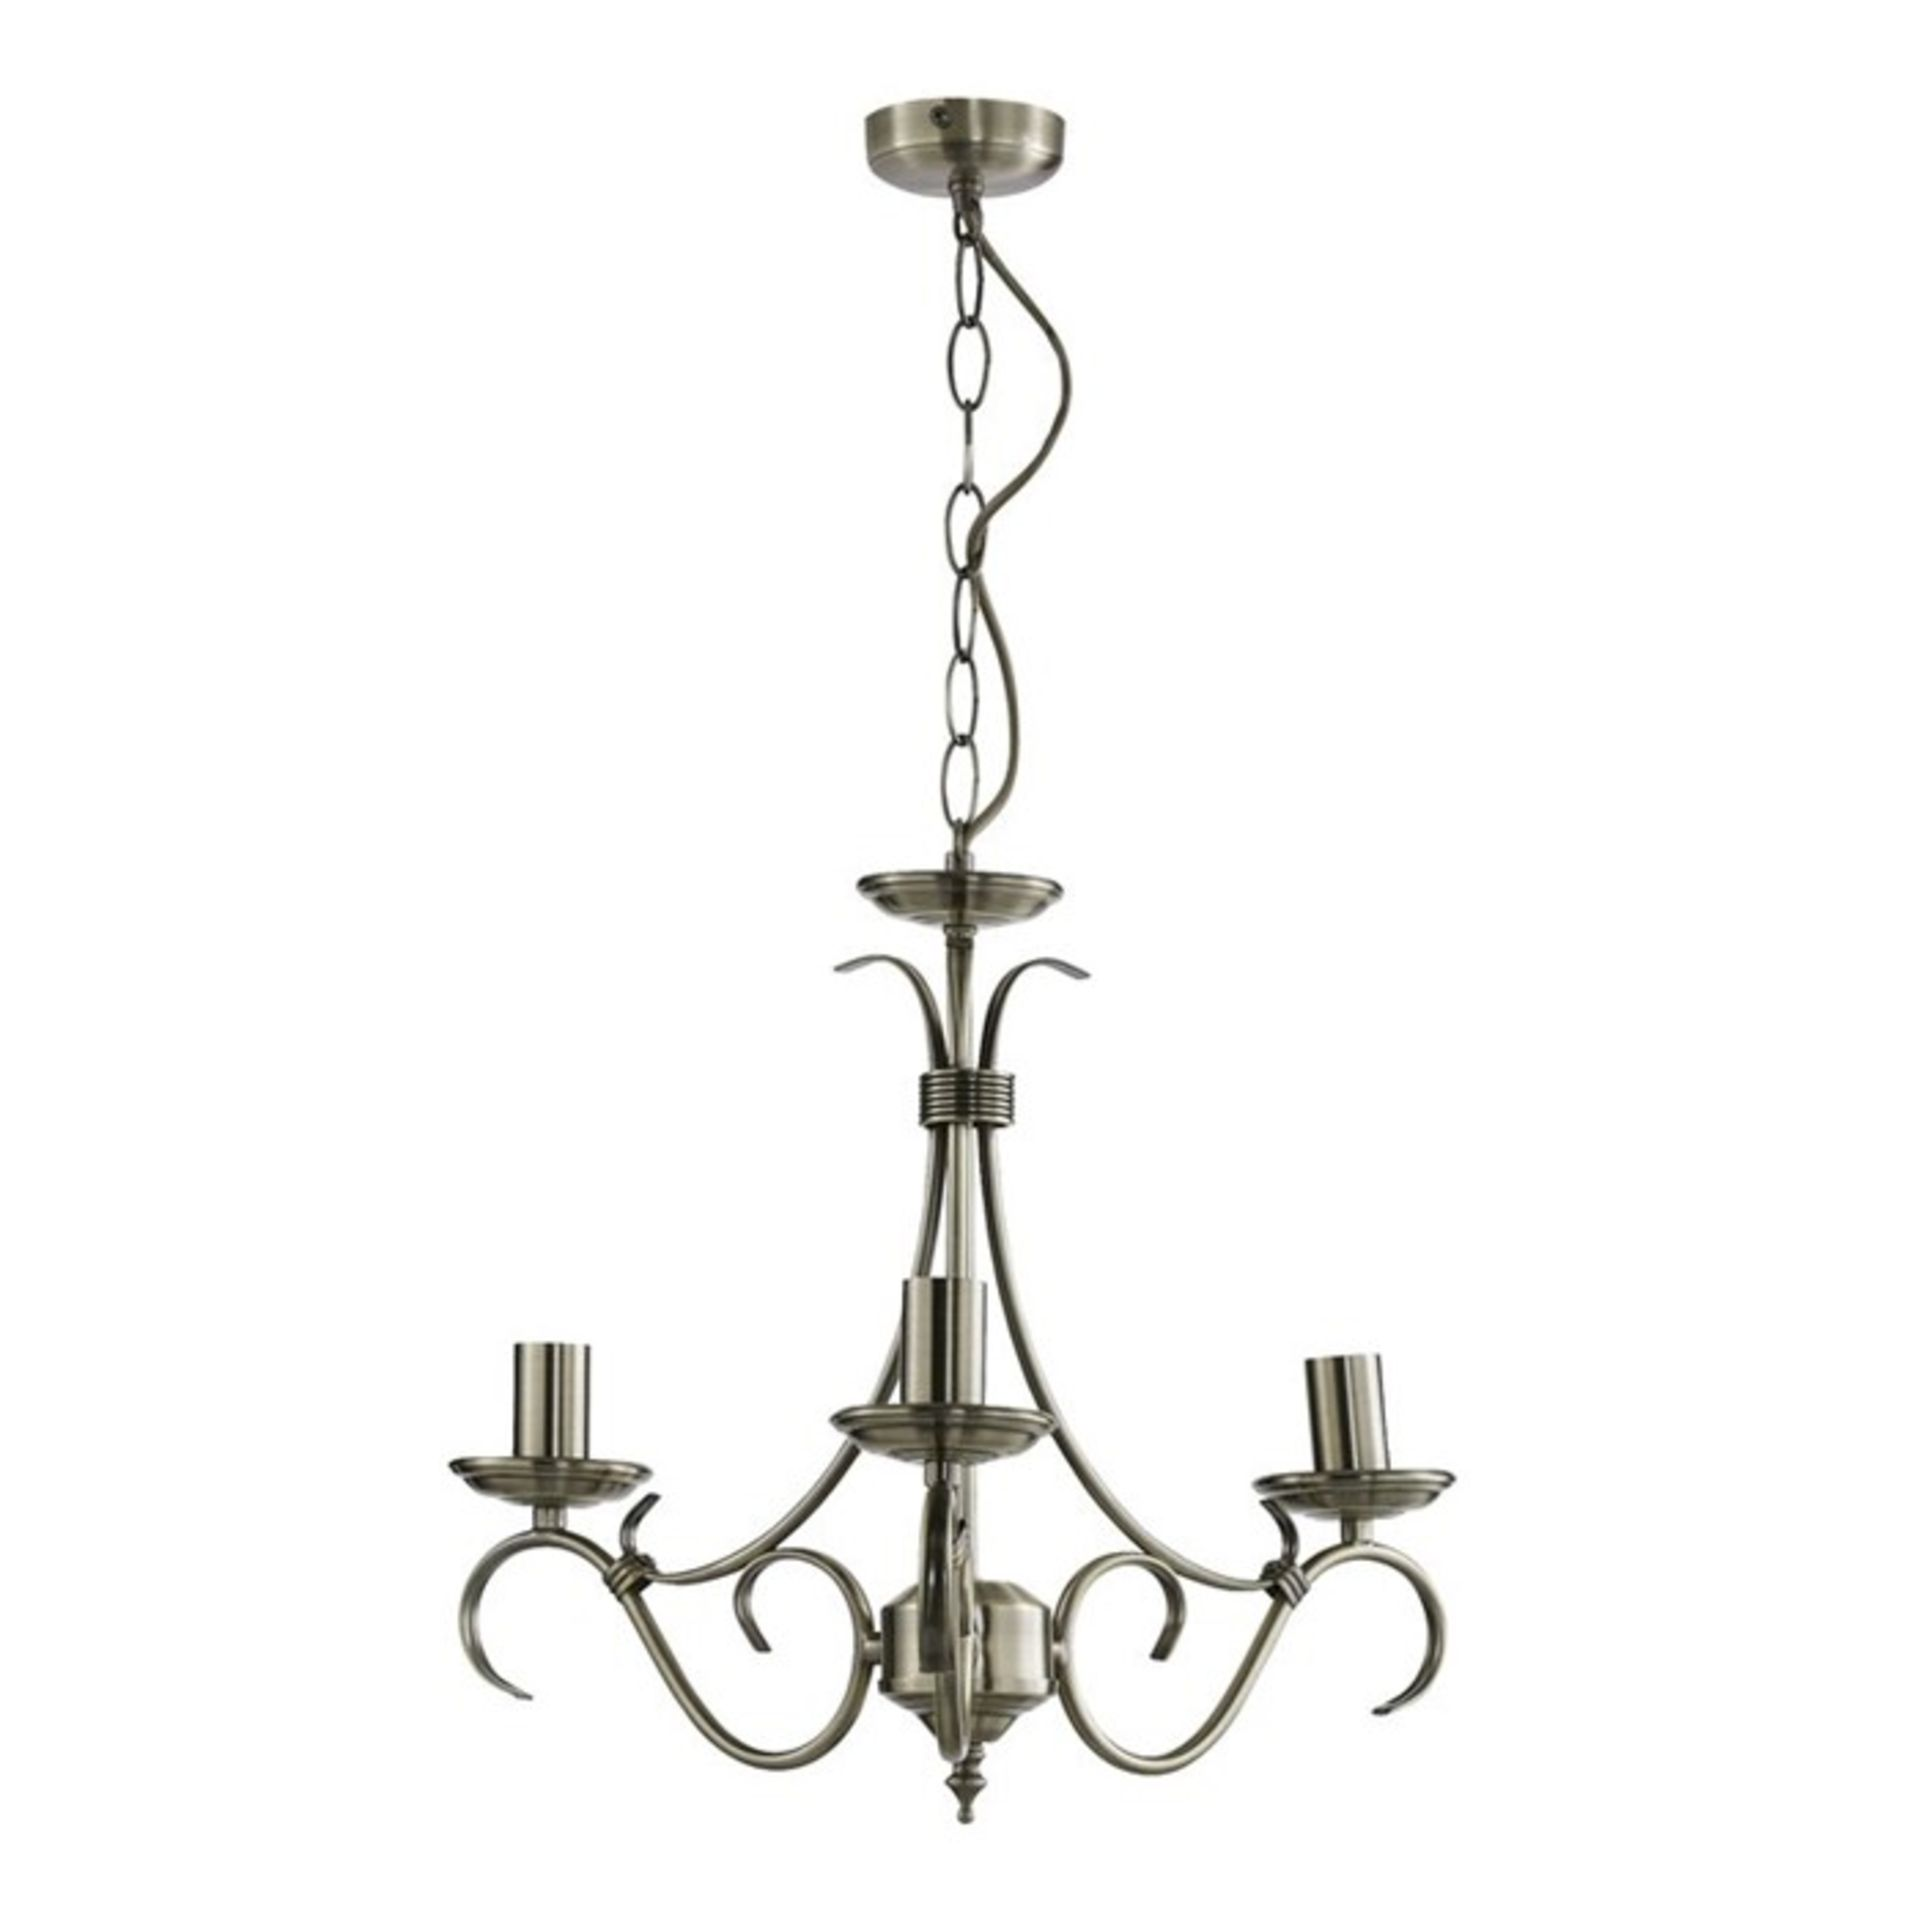 Lot 25 - Marlow Home Co.,Georgiana 3-Light Candle Style Chandelier - RRP £52.99 (UEL1478 - 15767/40) 6G